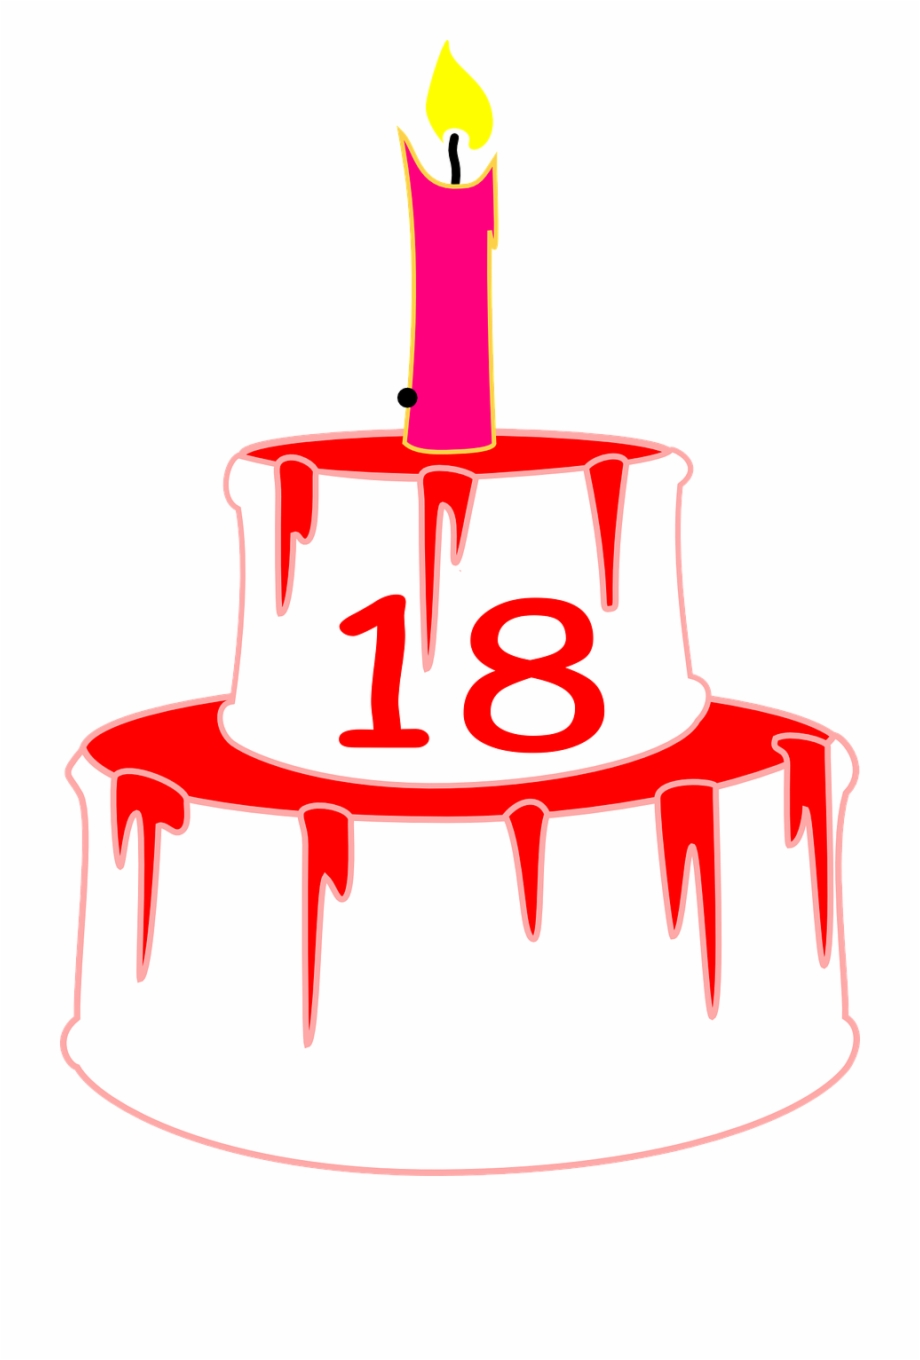 Transparent number 18th birthday clipart png download 18th Birthday Cake Png Free PNG Images & Clipart Download #4855563 ... png download